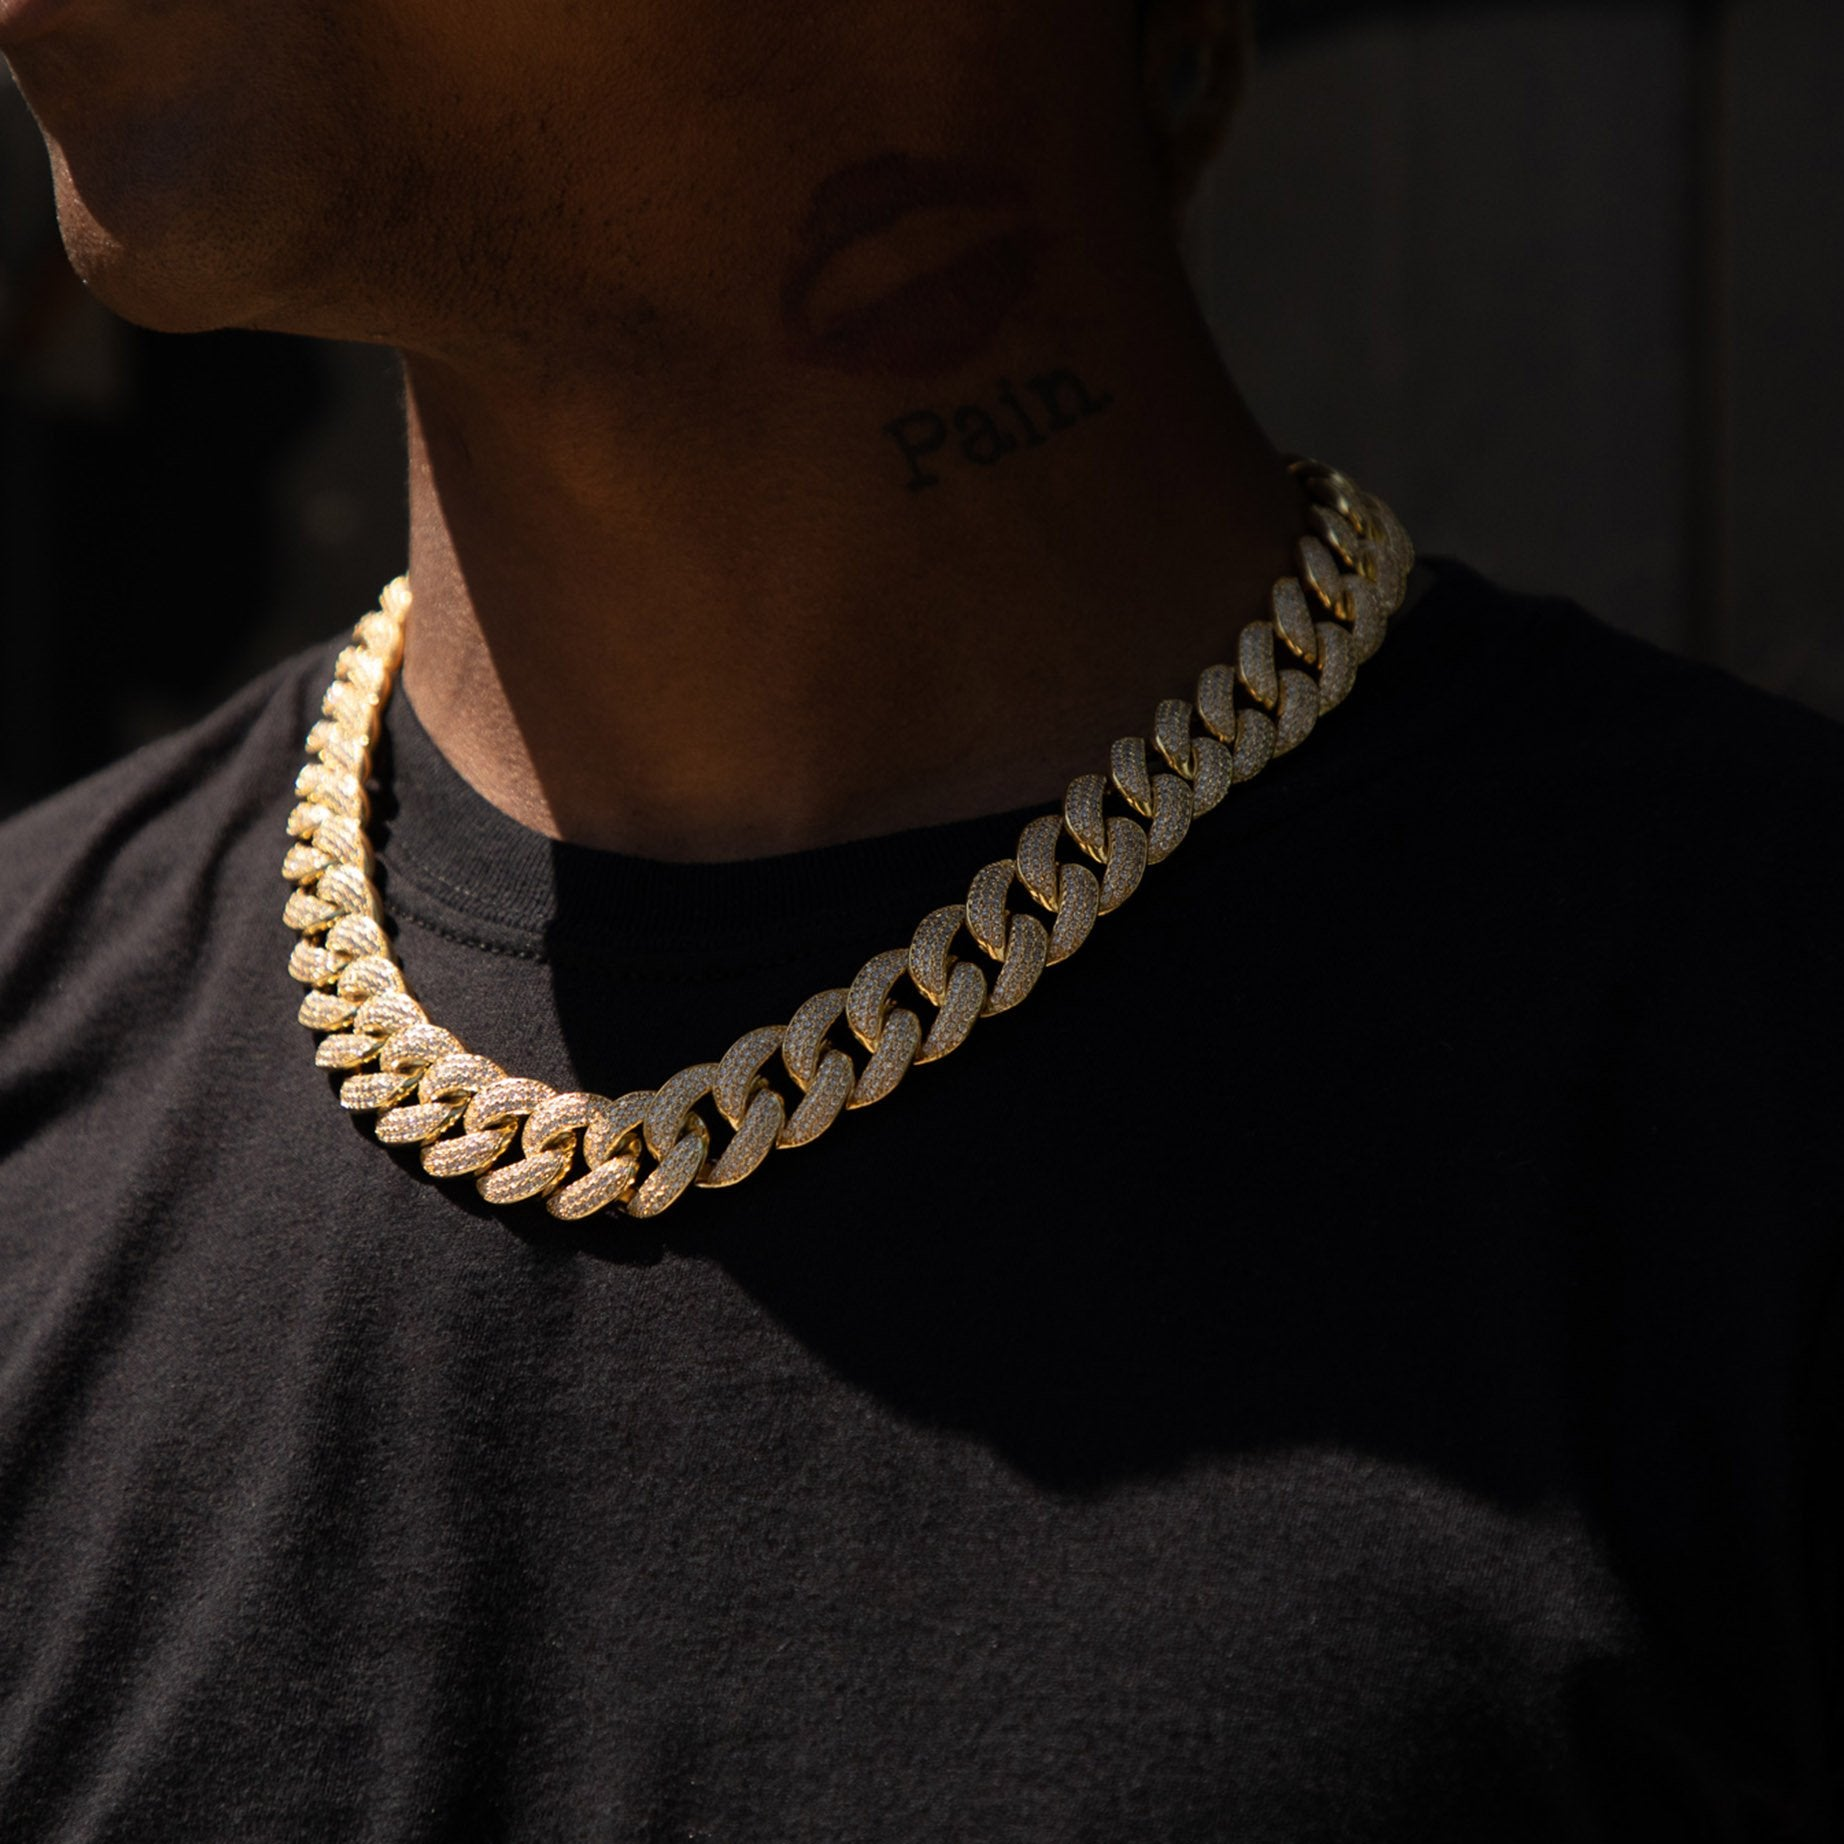 Gold Ice Thick Rapper Cuban Chain - Got Drip - Jewelry - Ice - Jake Paul